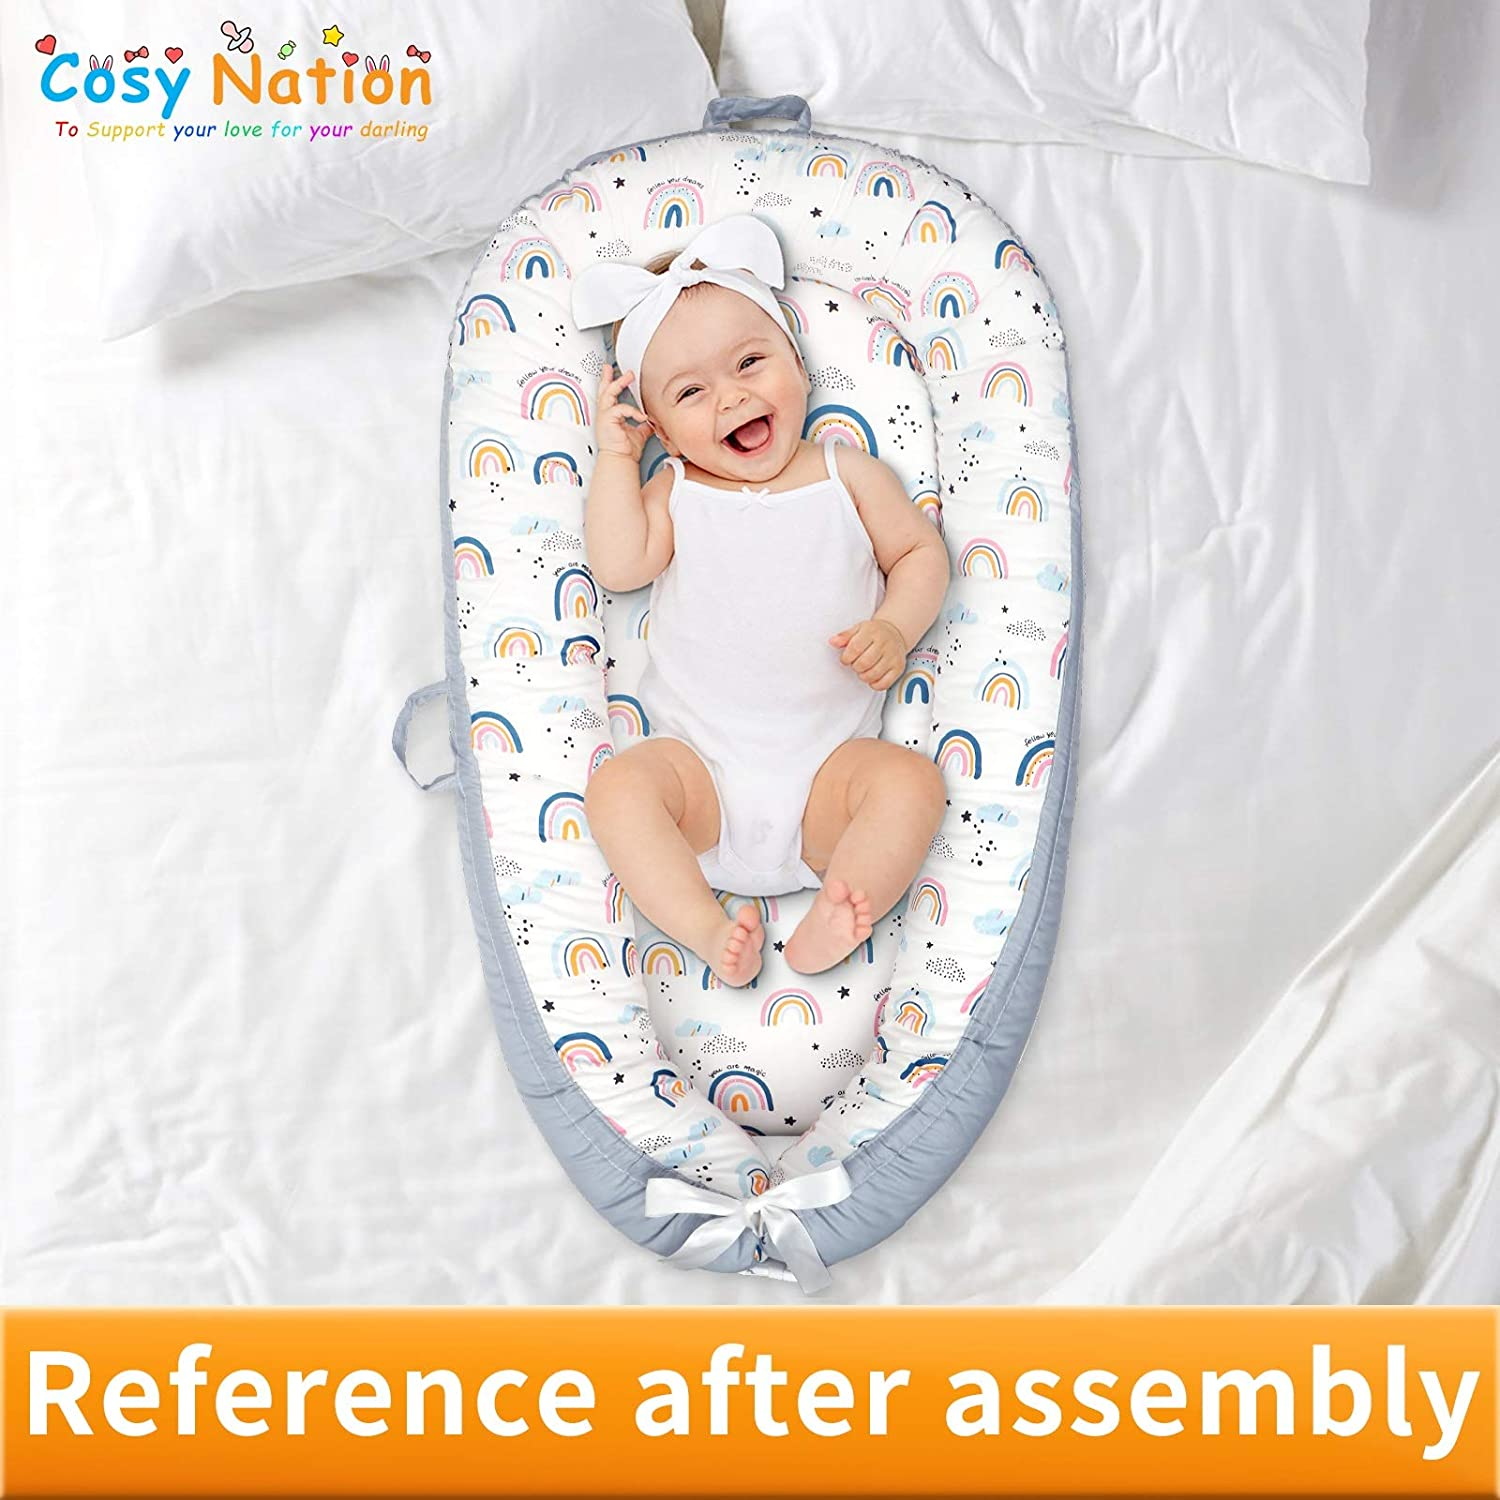 Baby Lounger Cover and Baby Nest Cover, 100% Breathable Fabric, Adjustable Size, Hidden Zipper, Machine Washable, Replacement Cover for CosyNation Baby Lounger (Rainbow)